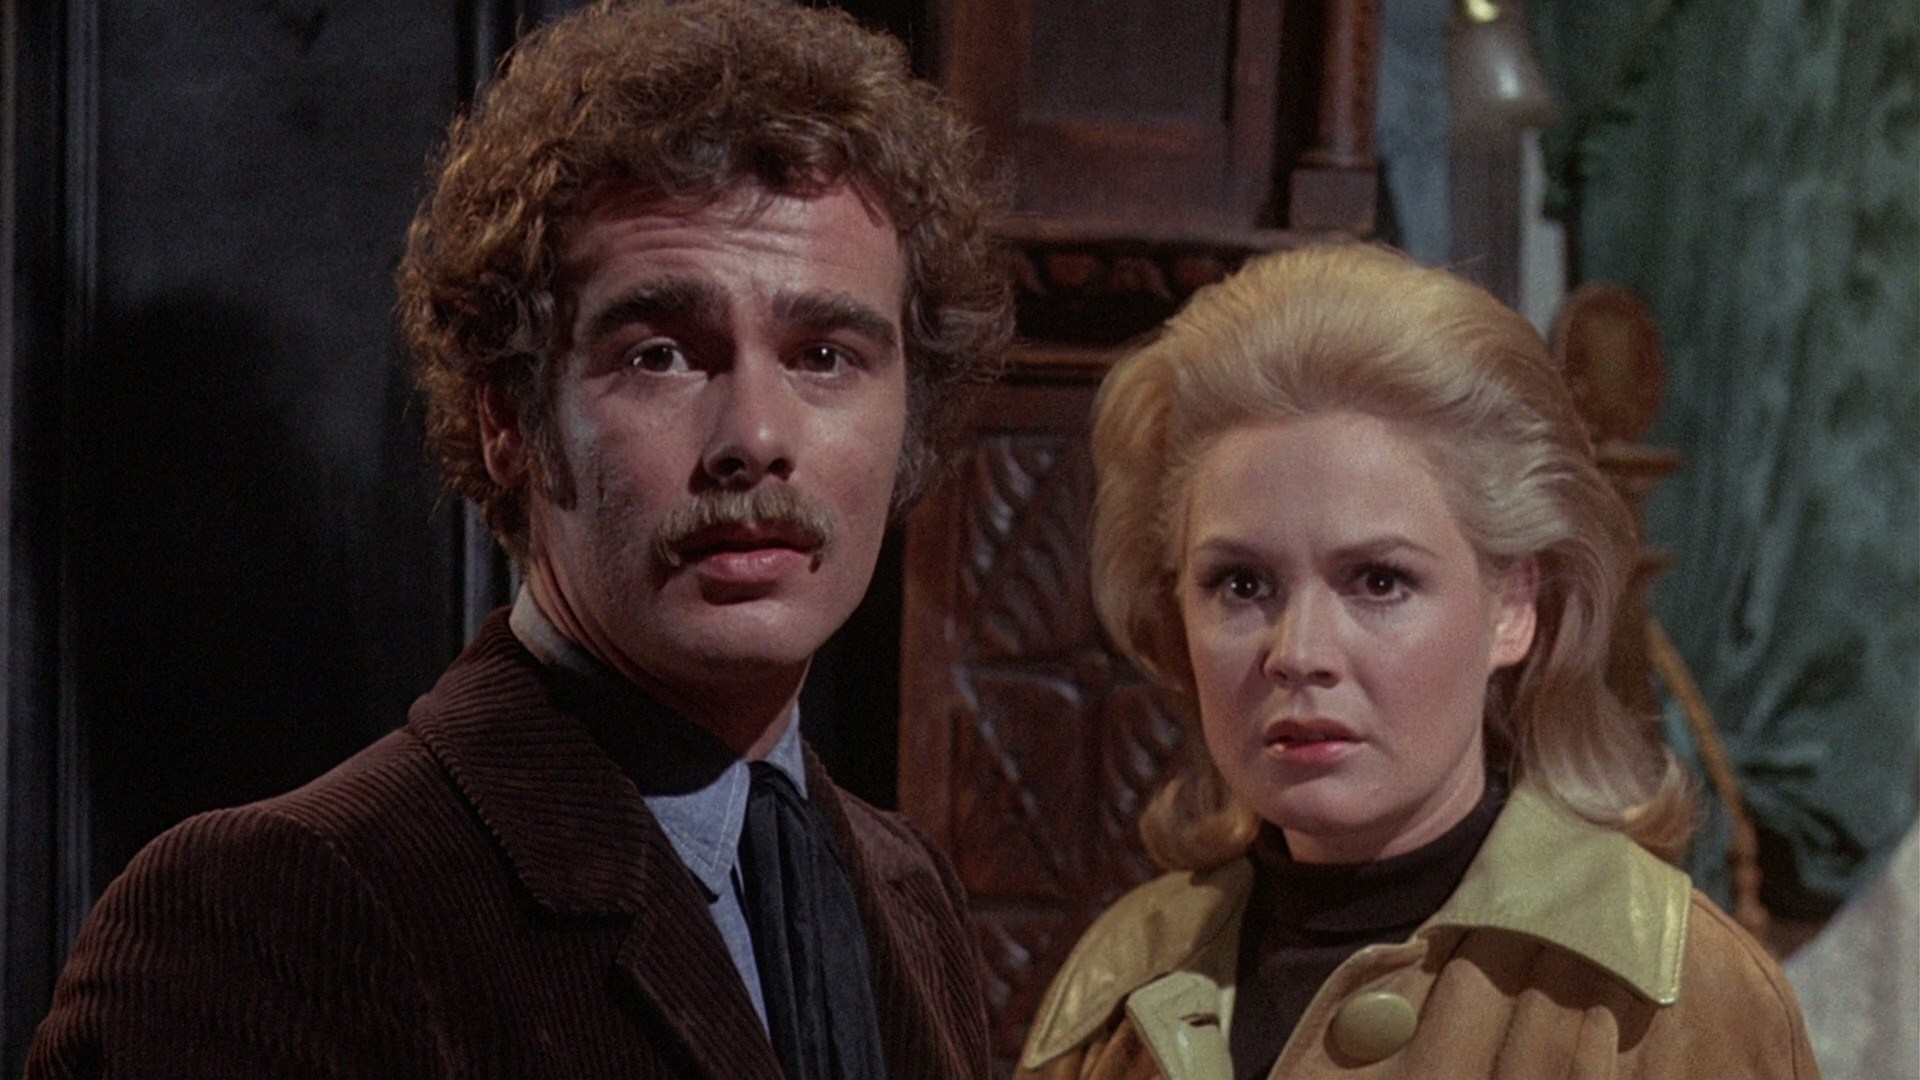 Wilbur Whateley (a young Dean Stockwell) and Sandra Dee in The Dunwich Horror (1969)